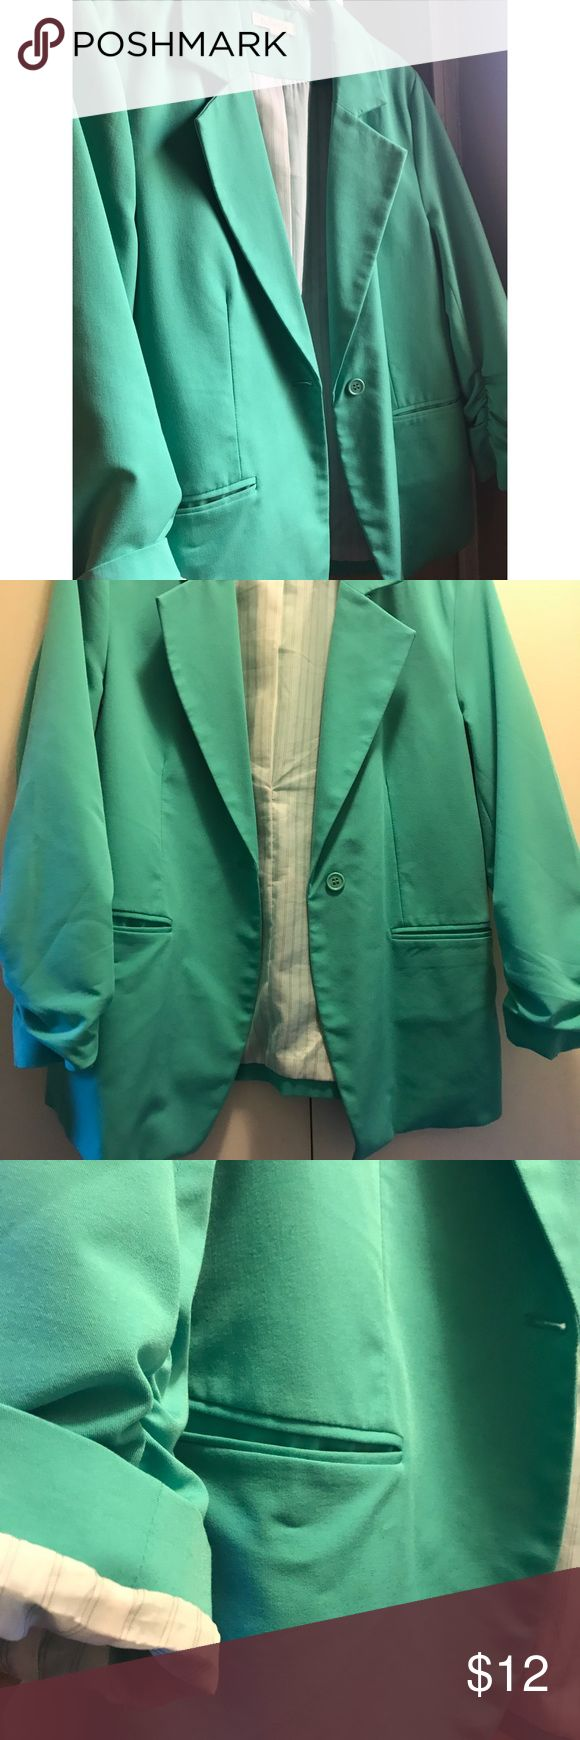 Mint green 1 button blazer Mint green 1 button blazer, pinstriped lining, 2 functional pockets, 3/4 sleeves that can be rolled up. Last pic is natural lighting Jackets & Coats Blazers